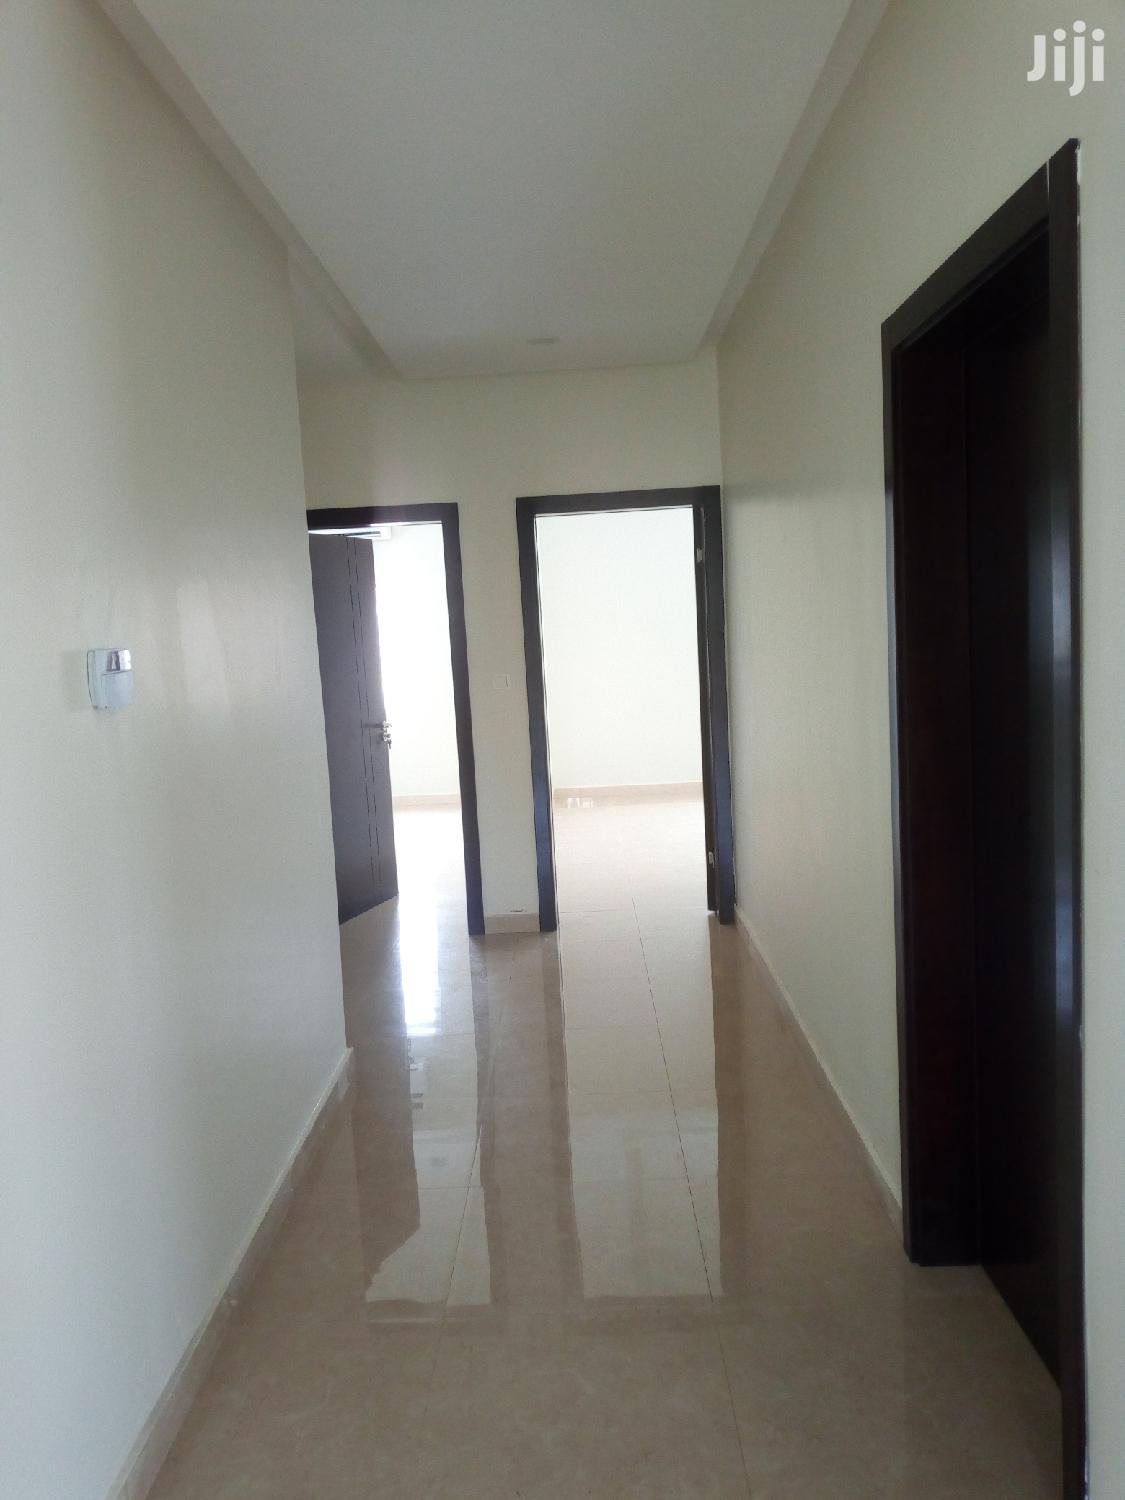 Executive 4 Bedroom House For Sale At East Legon | Houses & Apartments For Sale for sale in East Legon, Greater Accra, Ghana